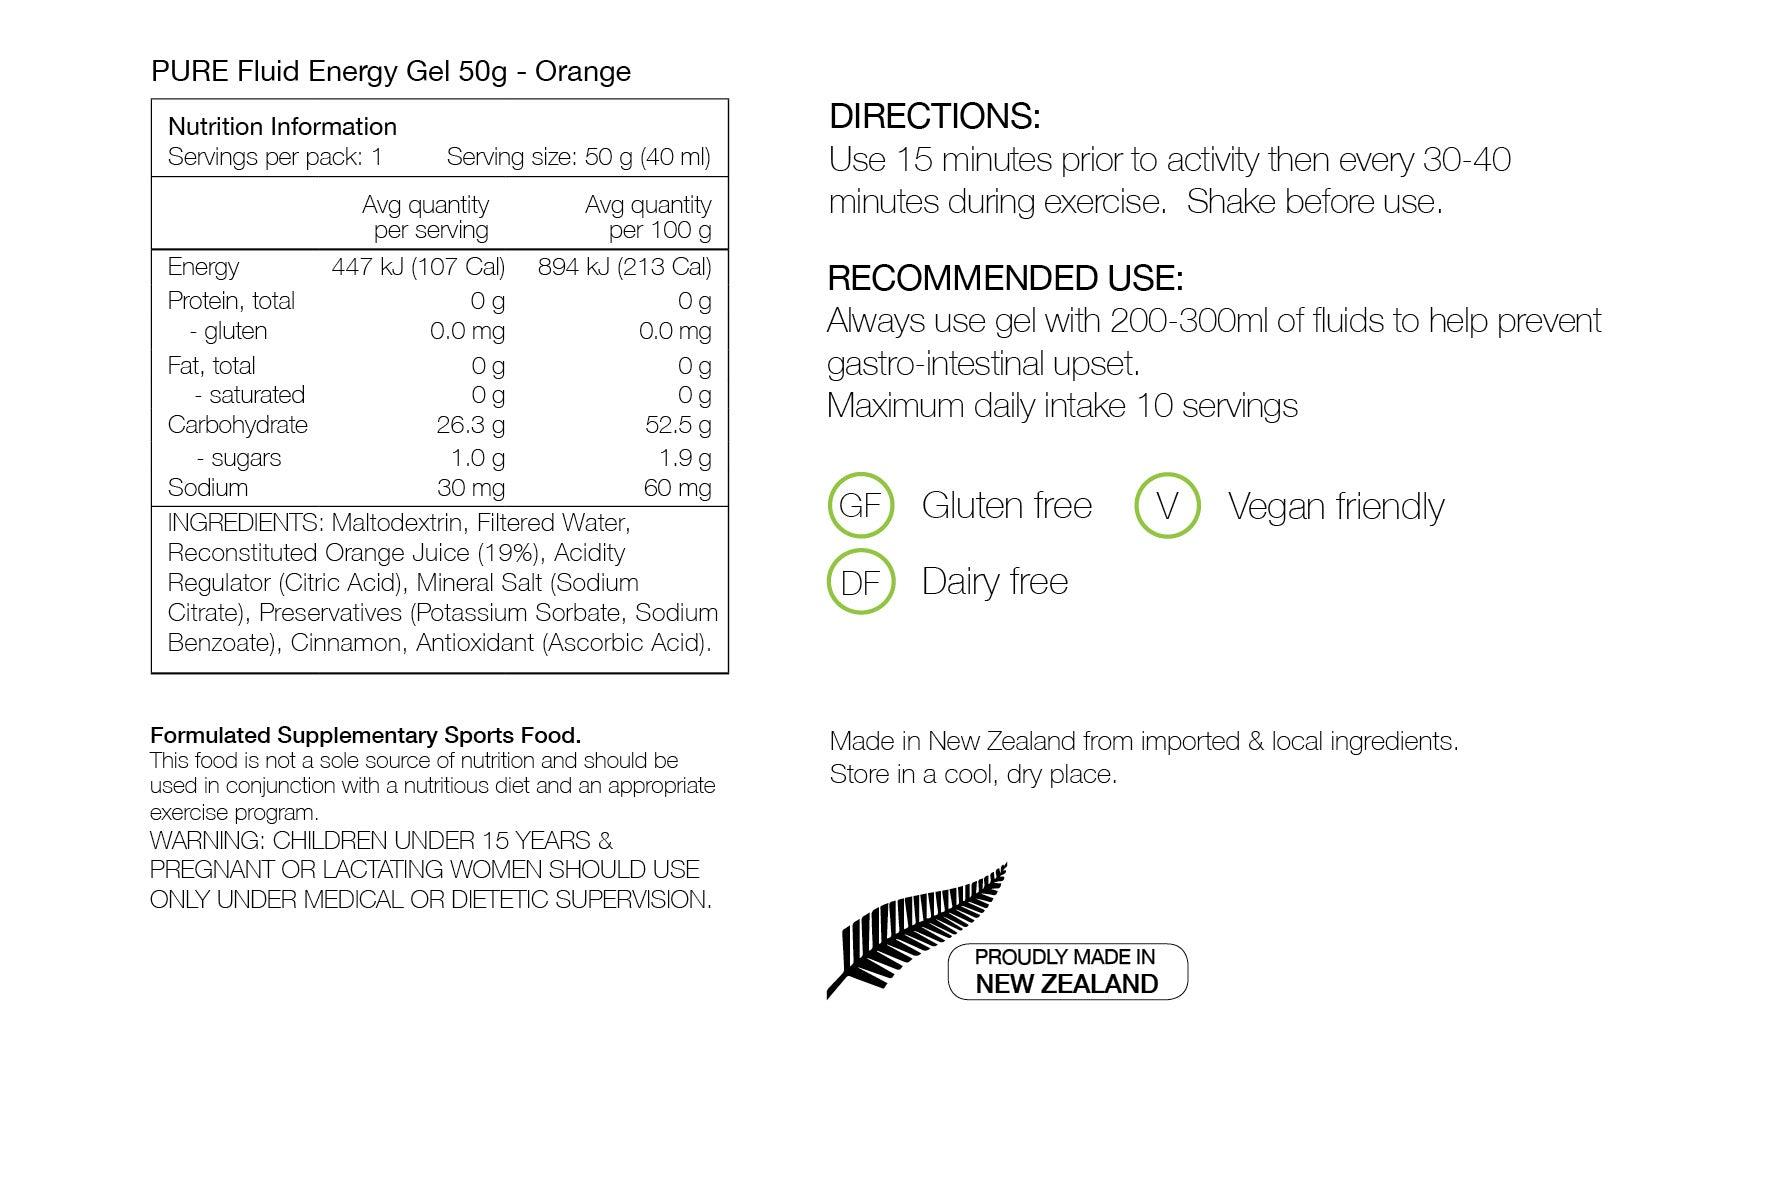 PURE NUTRITION | Fluid Energy Gel Box - Orange Nutrition Sheet